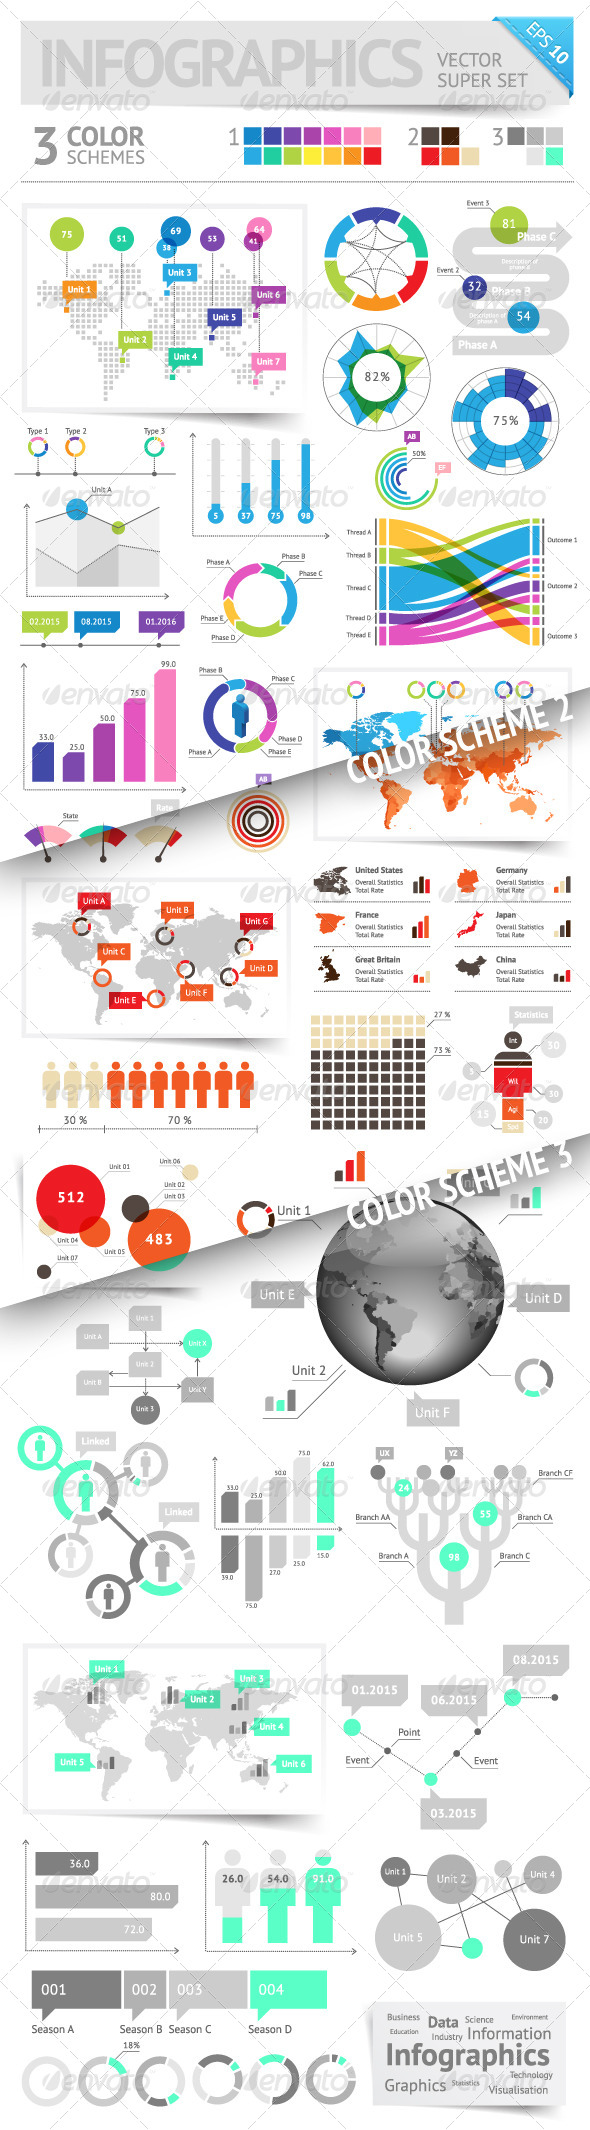 GraphicRiver Infographic Design Elements 3 Color Schemes 4822523